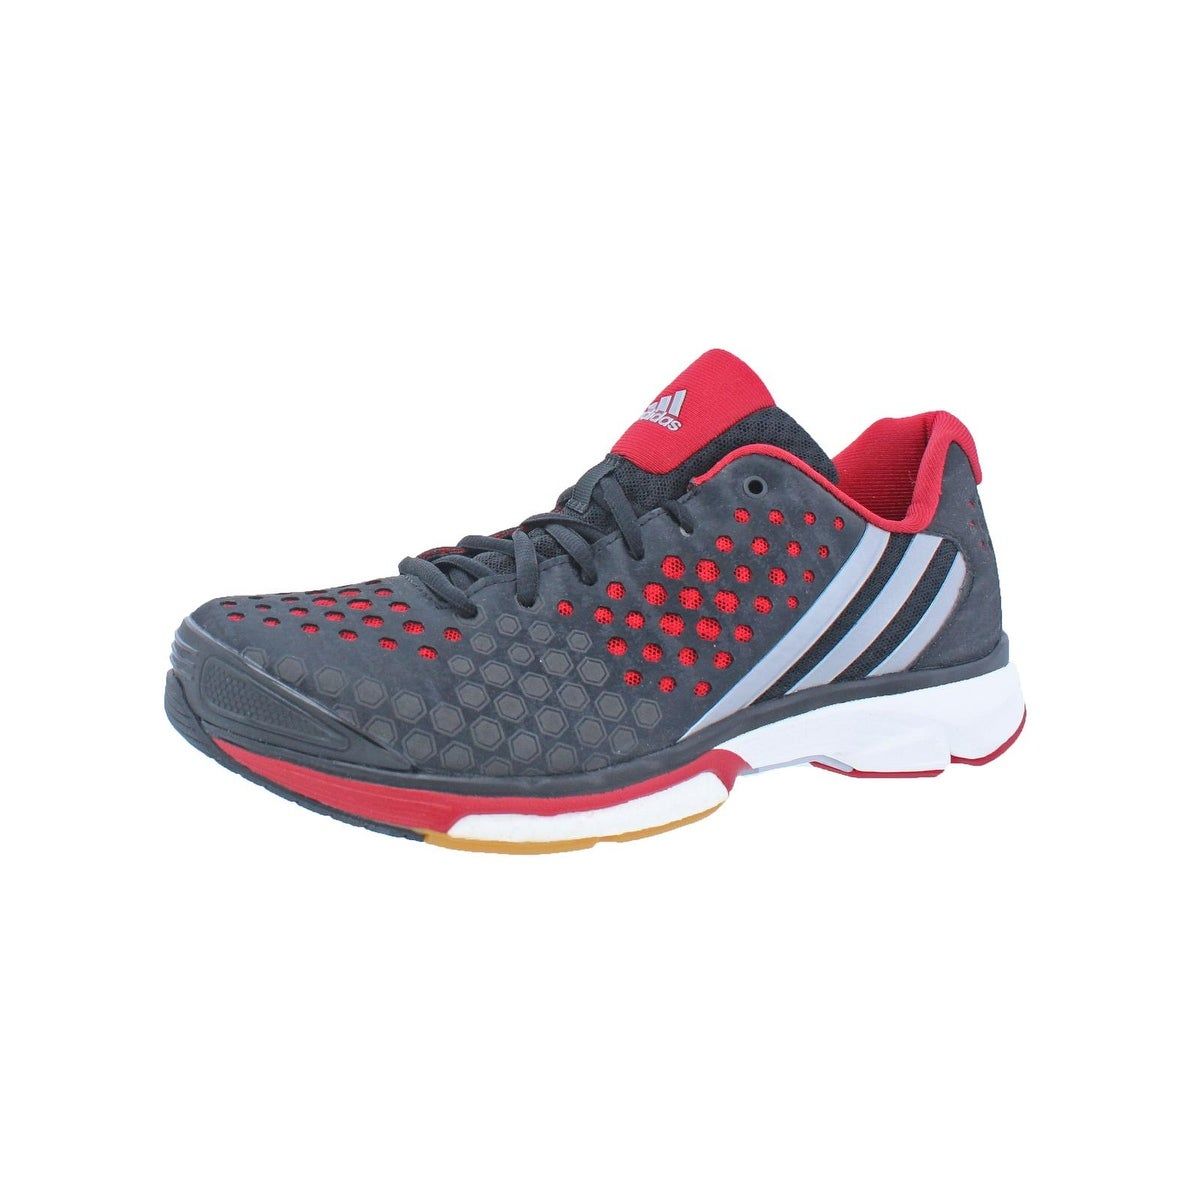 in stock outlet store sale 2018 sneakers Adidas Womens Volley Response Boost Volleyball Shoes Non-Marking mi  Compatible - 7.5 medium (b,m)